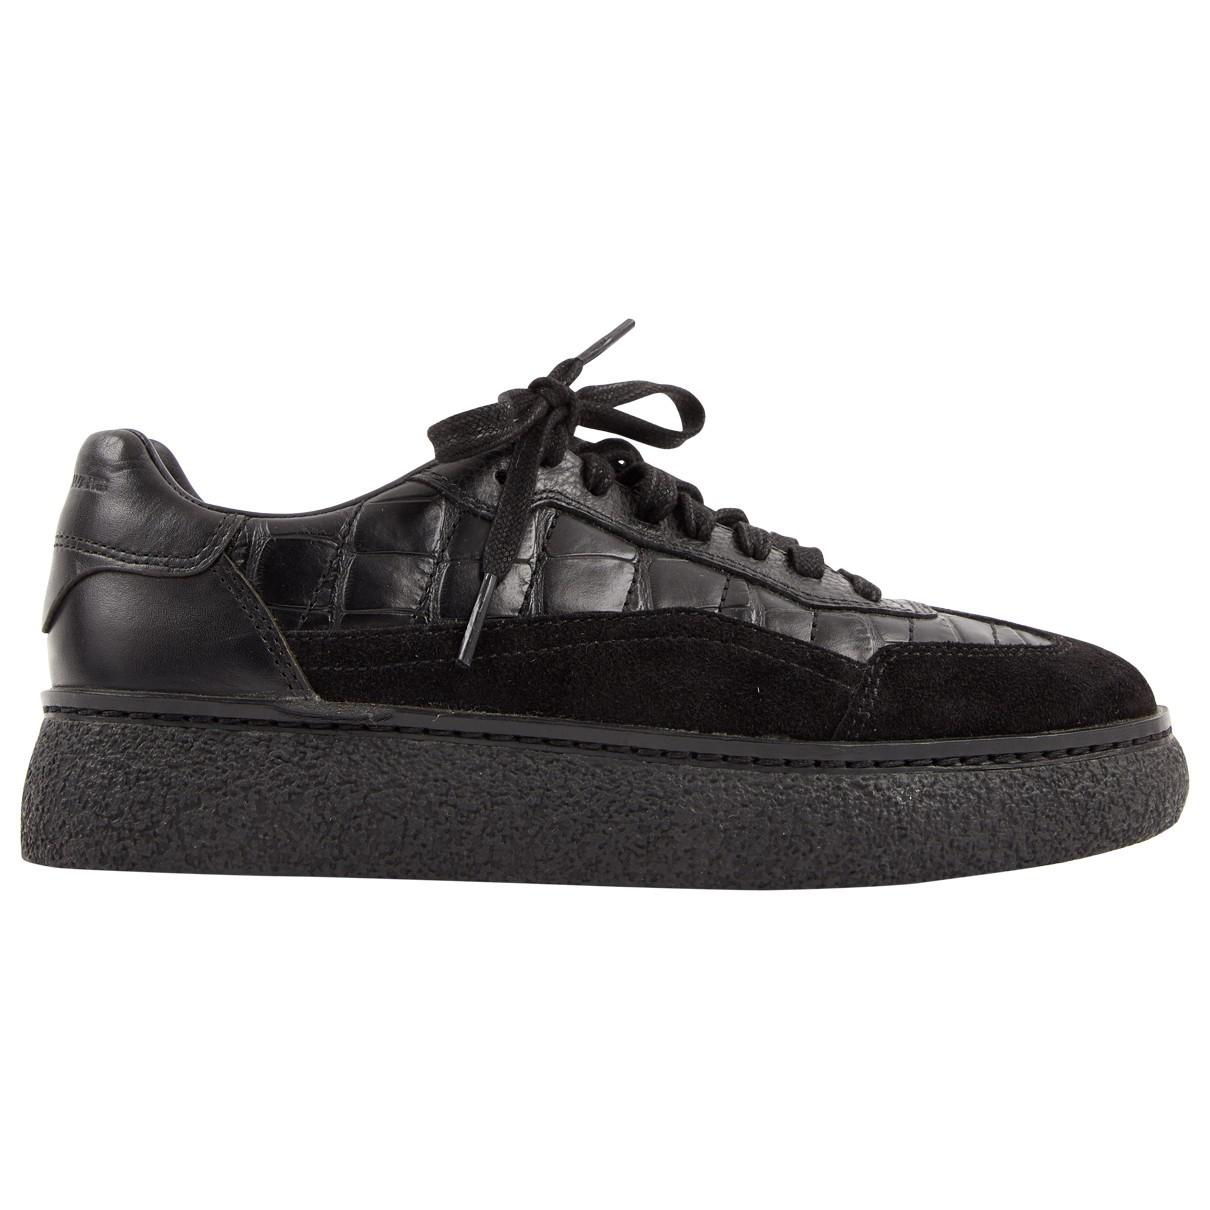 Pre-owned - Leather trainers Alexander Wang rJlLotCUx